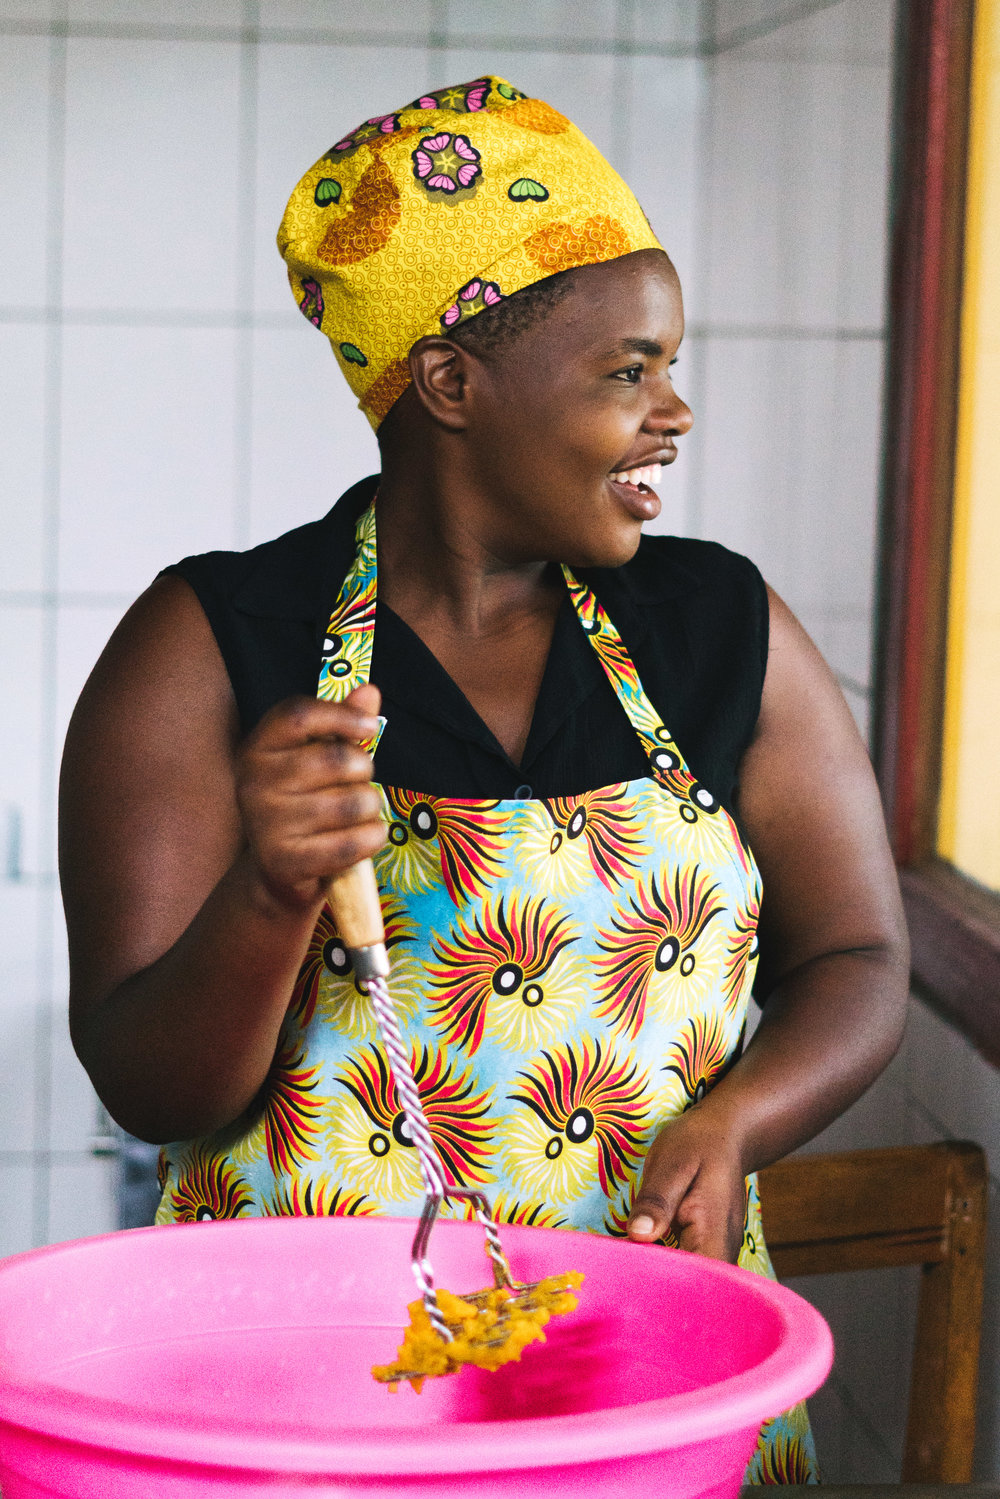 - A soft launch of new bakery in February helped the women adjust to new bakery workflows, products, and processes.